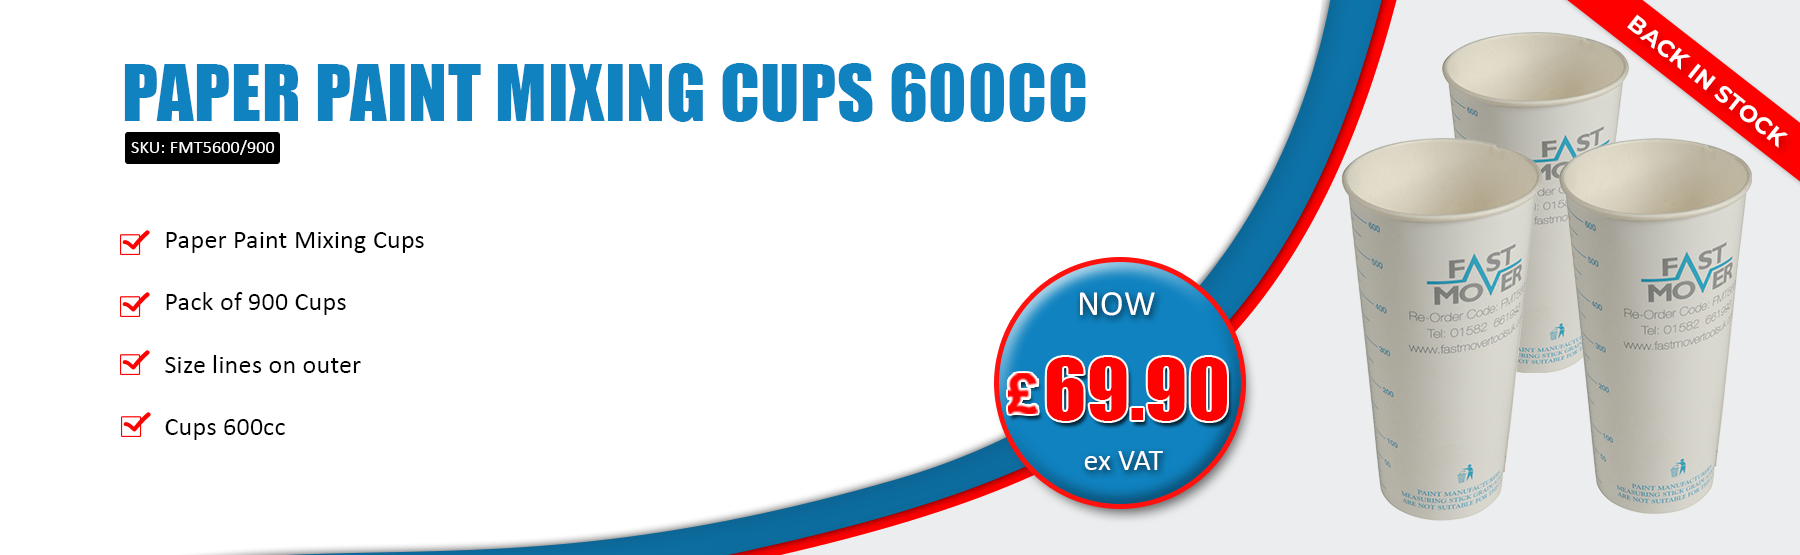 Paper Paint Mixing Cups 600CC